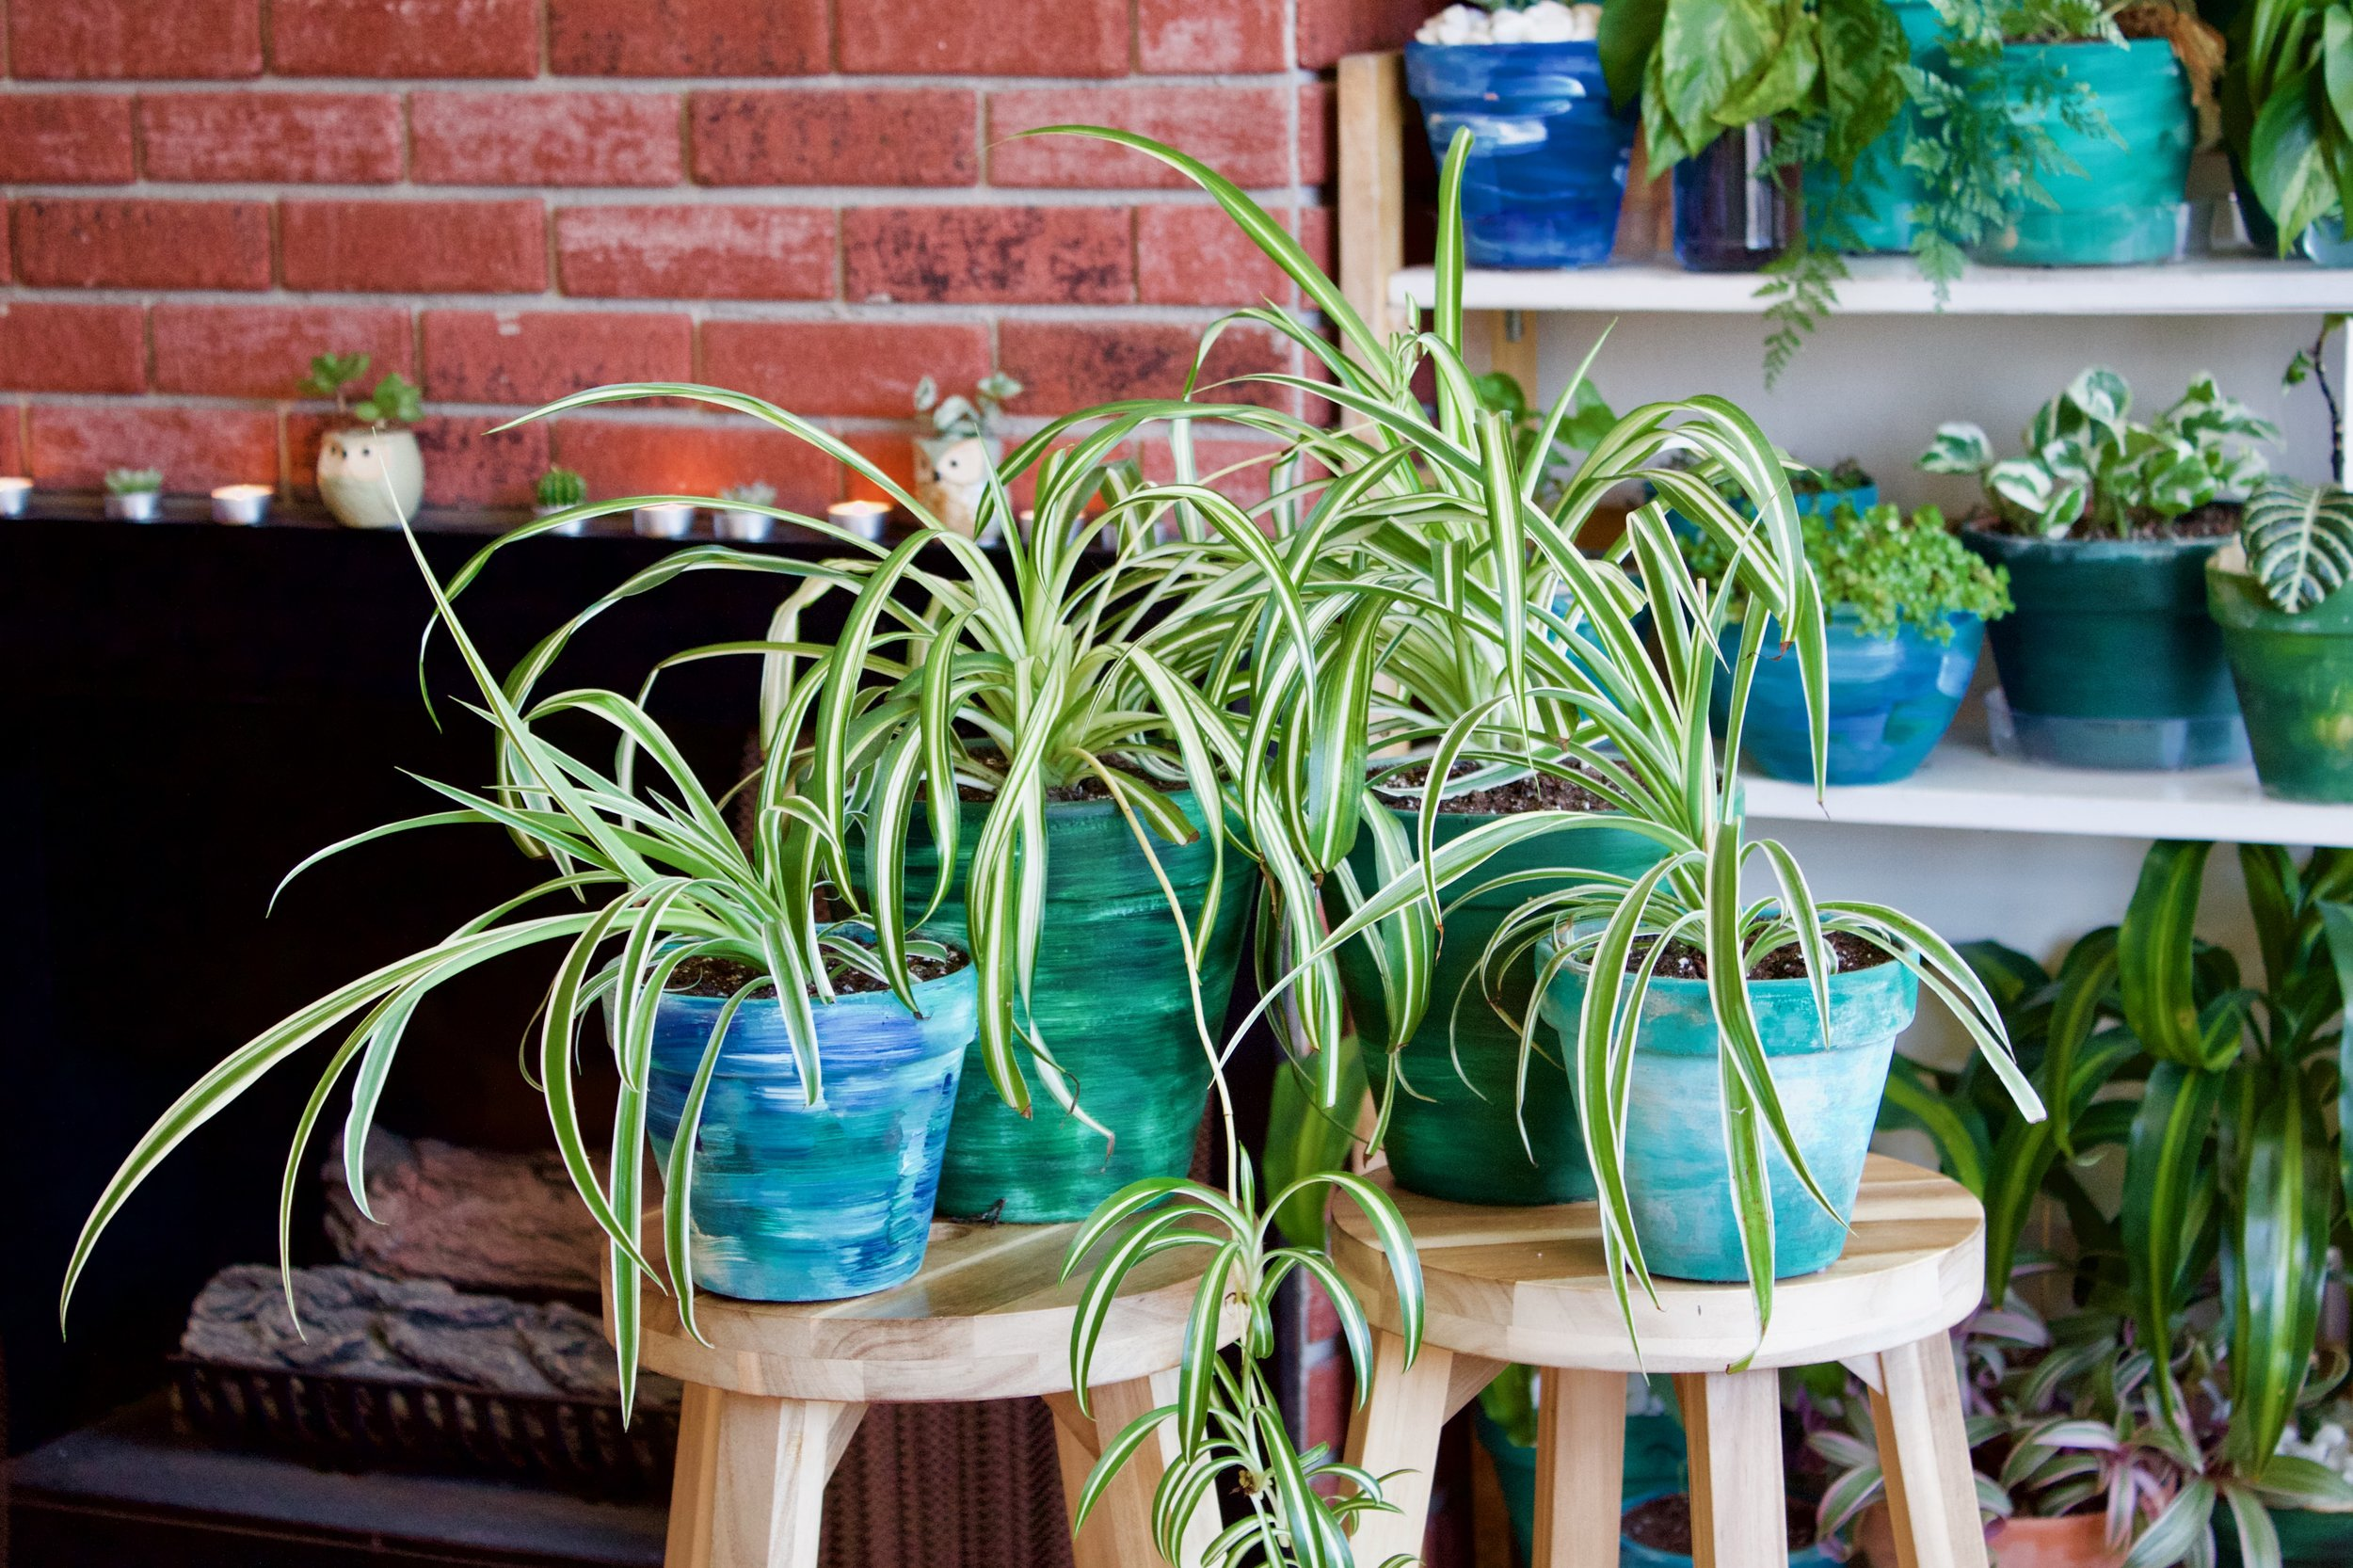 Episode 101: the spider plant aka Chlorophytum comosum